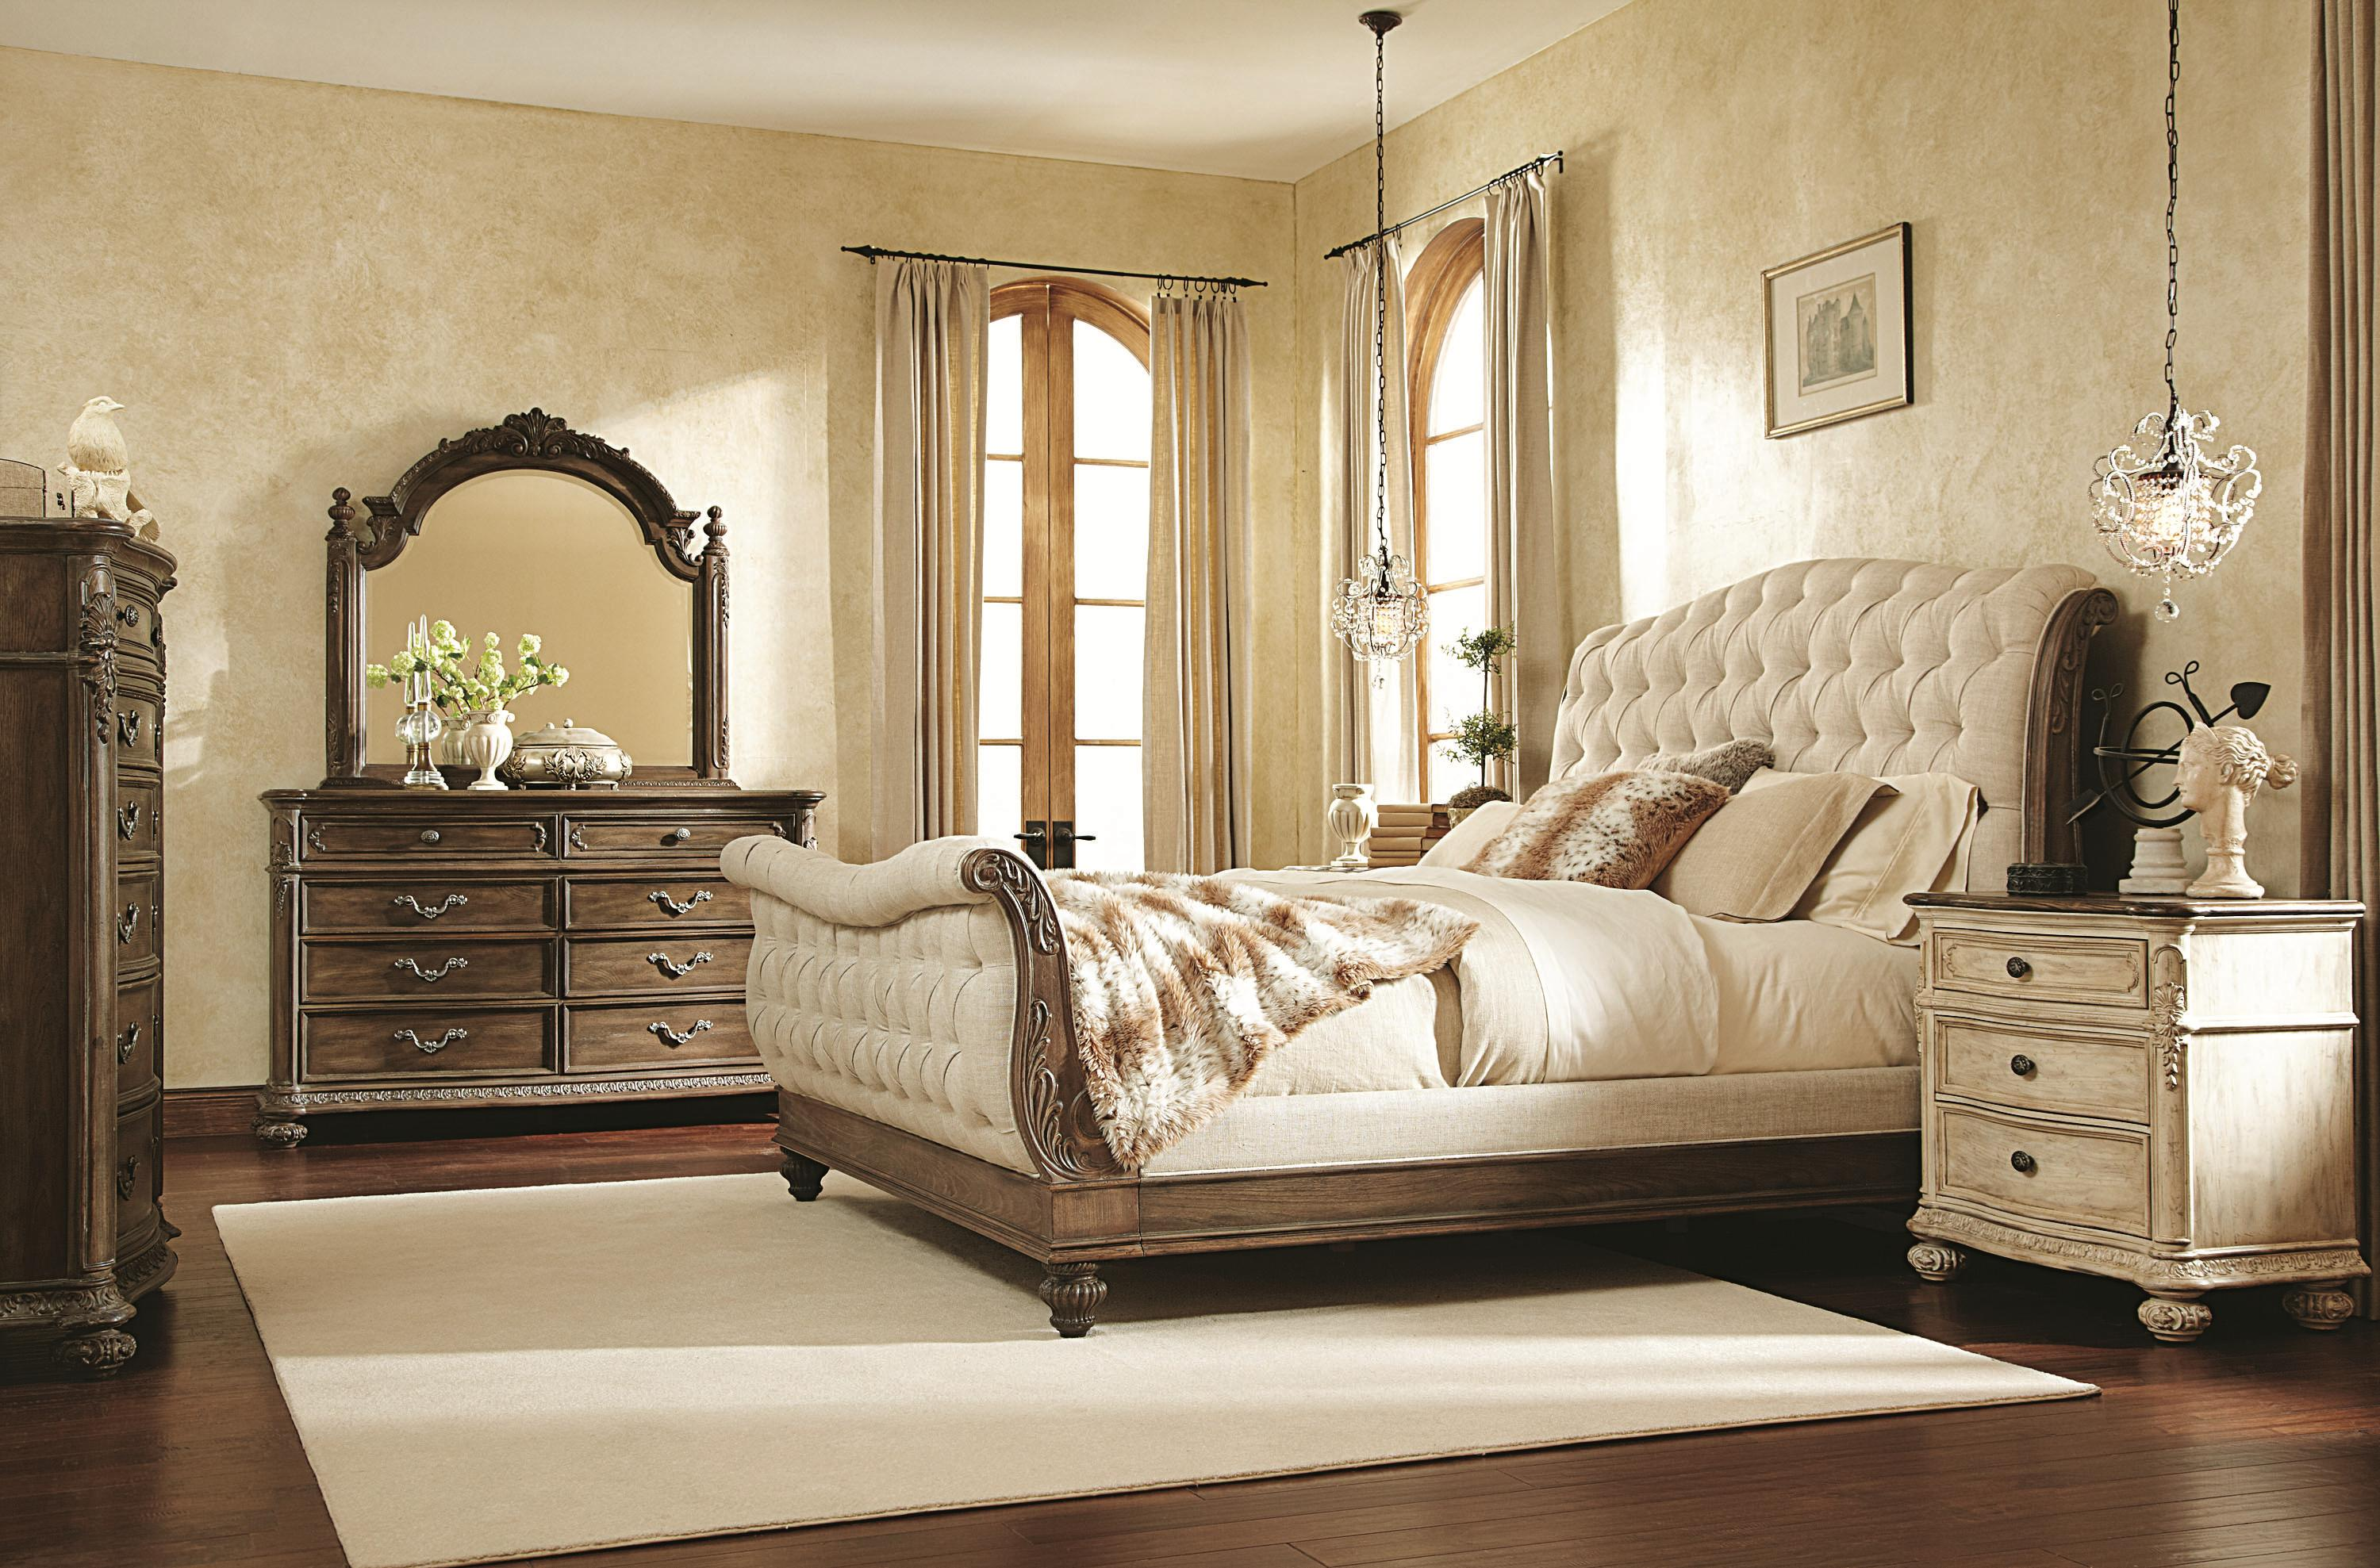 Queen Sleigh Bed With Linen Tufted Headboard And Footboard By American Drew Wolf And Gardiner